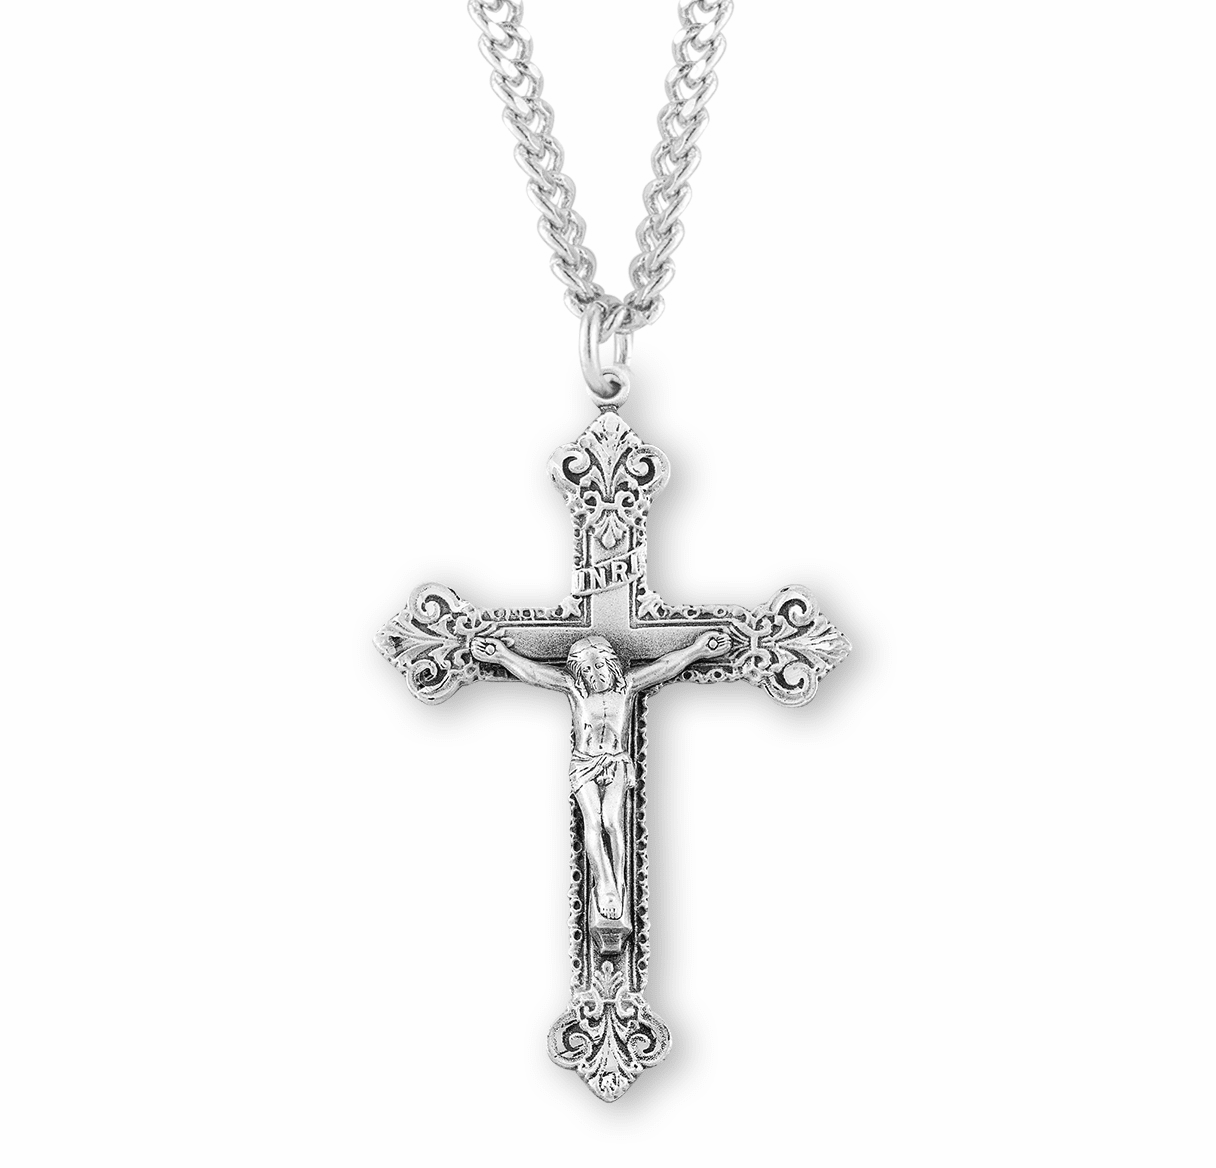 Elegant Ornate Sterling Silver Crucifix Pendant with Chain by HMH Religious